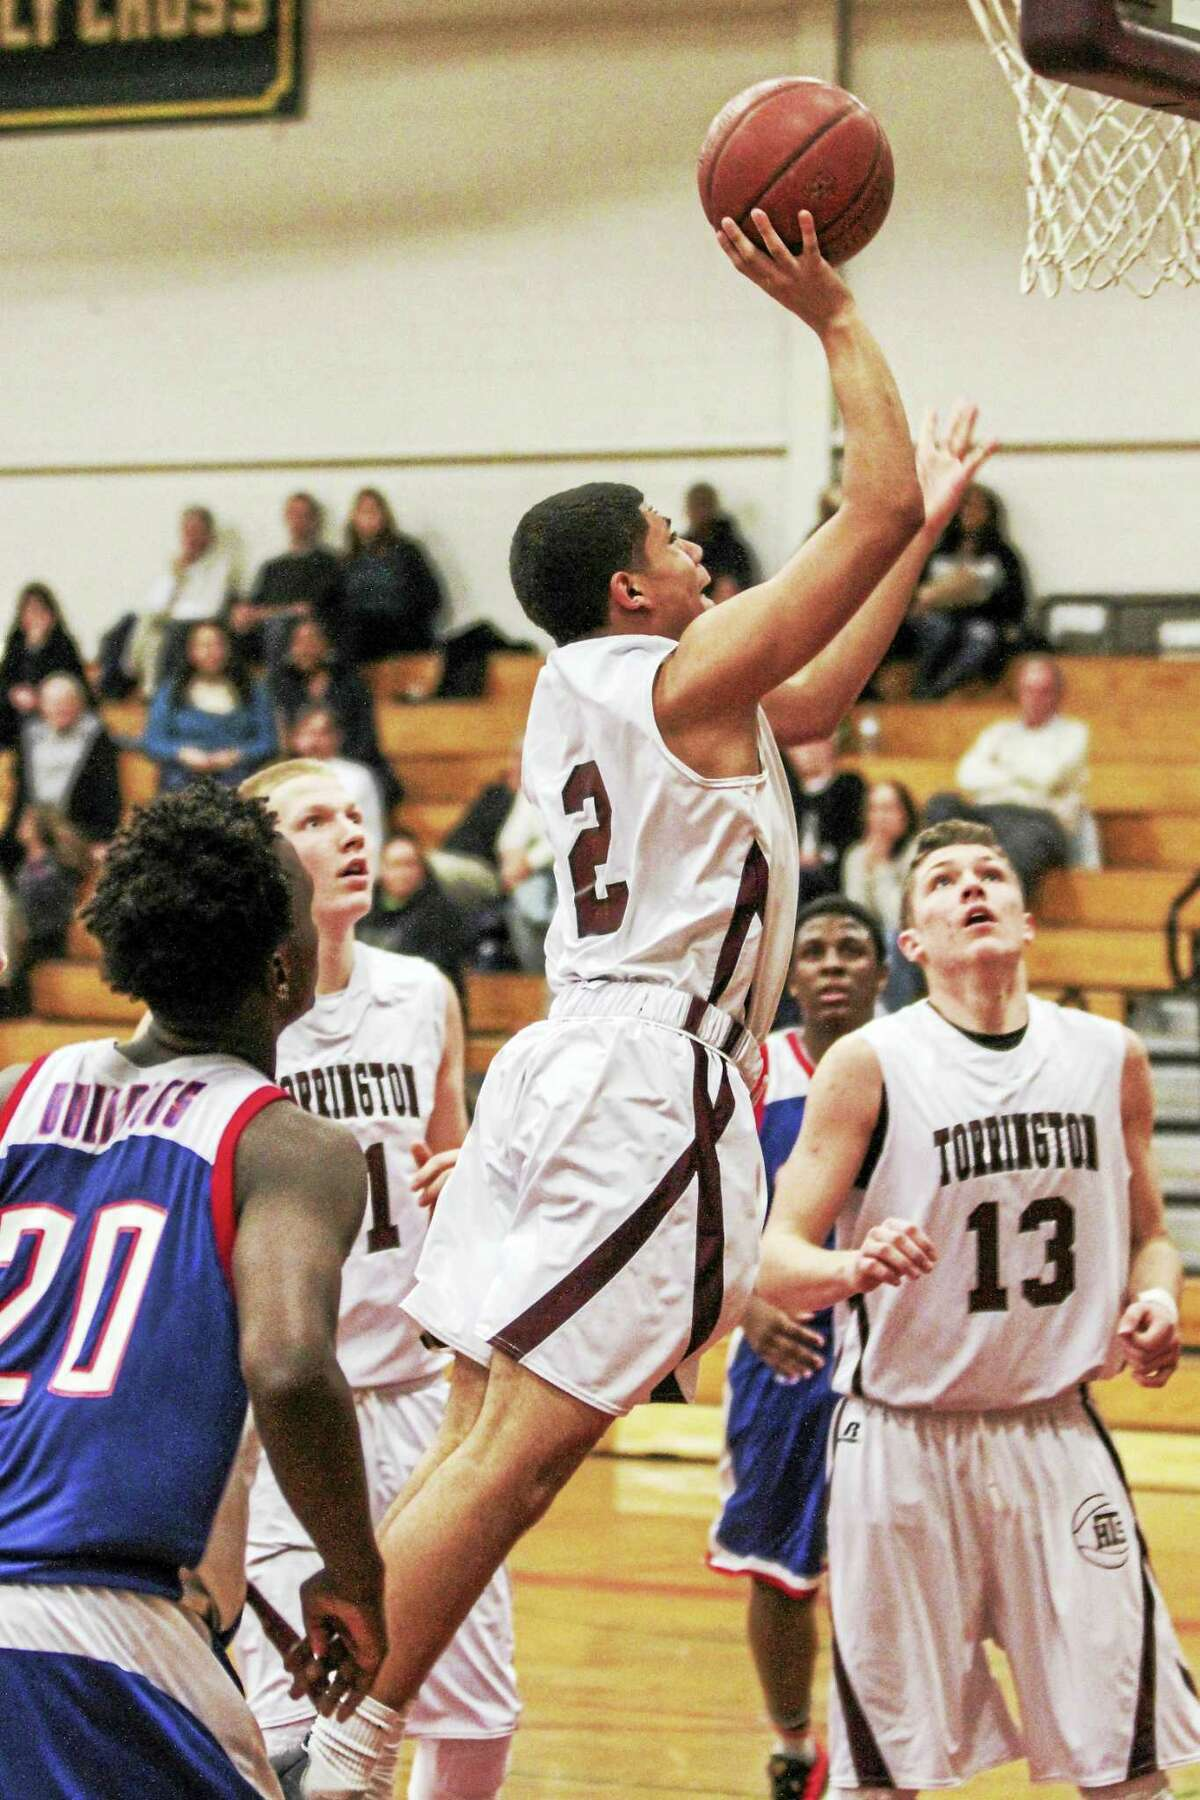 Stephon Dailey of Torrington goes up for a shot in his team's loss to Crosby Friday night.